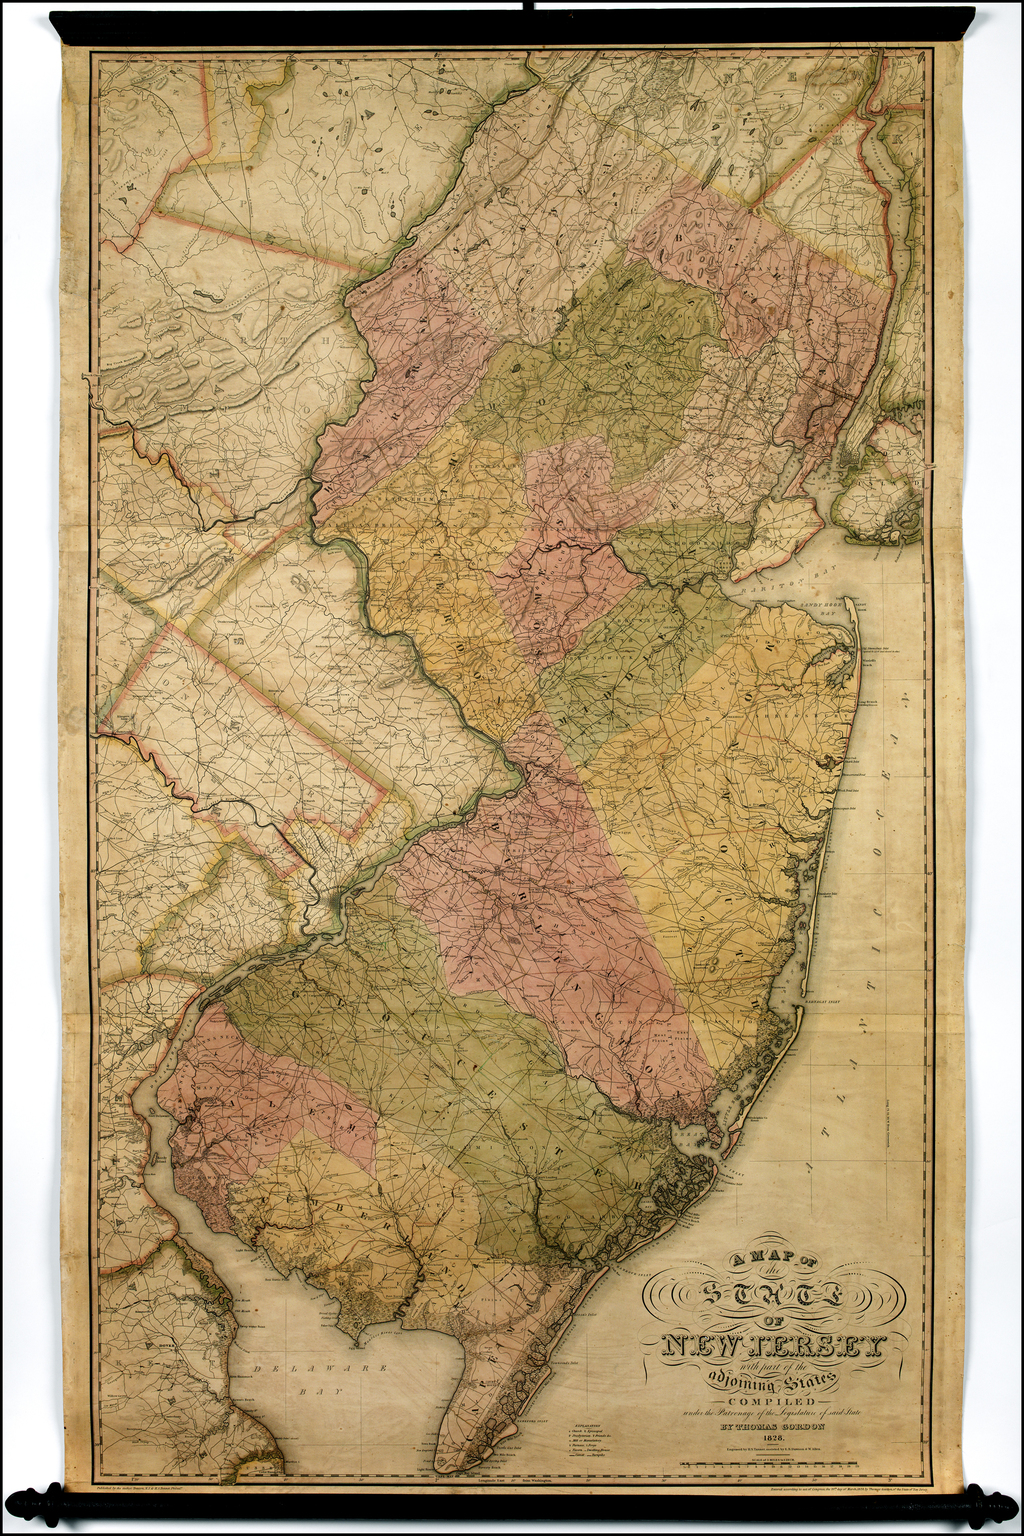 A Map of the State of New Jersey with part of the adjoining States Compiled under the Patronage of the Legislature of said State By Thomas Gordon . . 1828 By Thomas Gordon